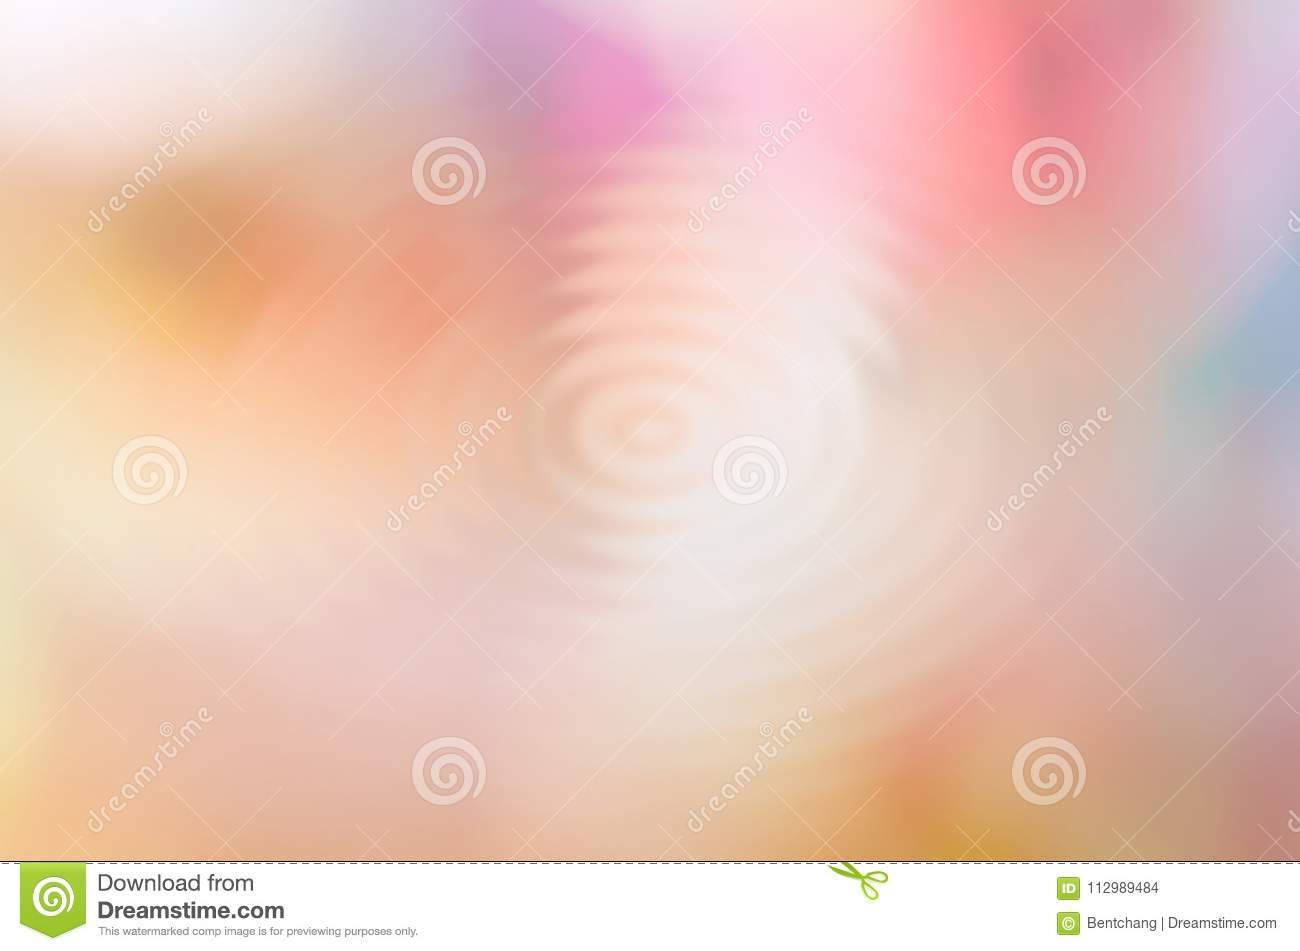 Texture background blur. Abstract motion, good for design. Artwork, beauty, painting & wave.